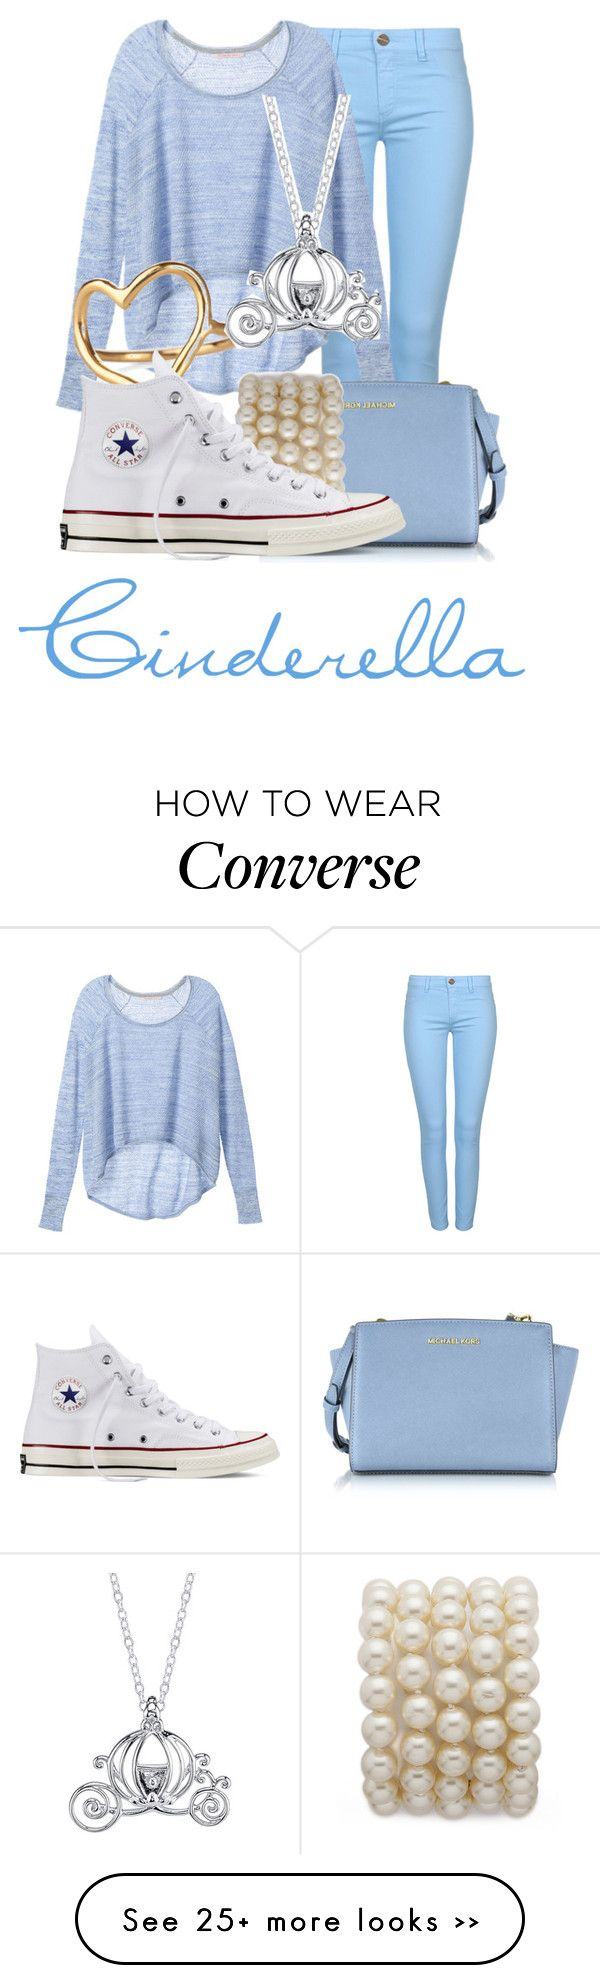 """Cinderella"" by disneyfasion on Polyvore--i like all aspects of this outfit, just not together"